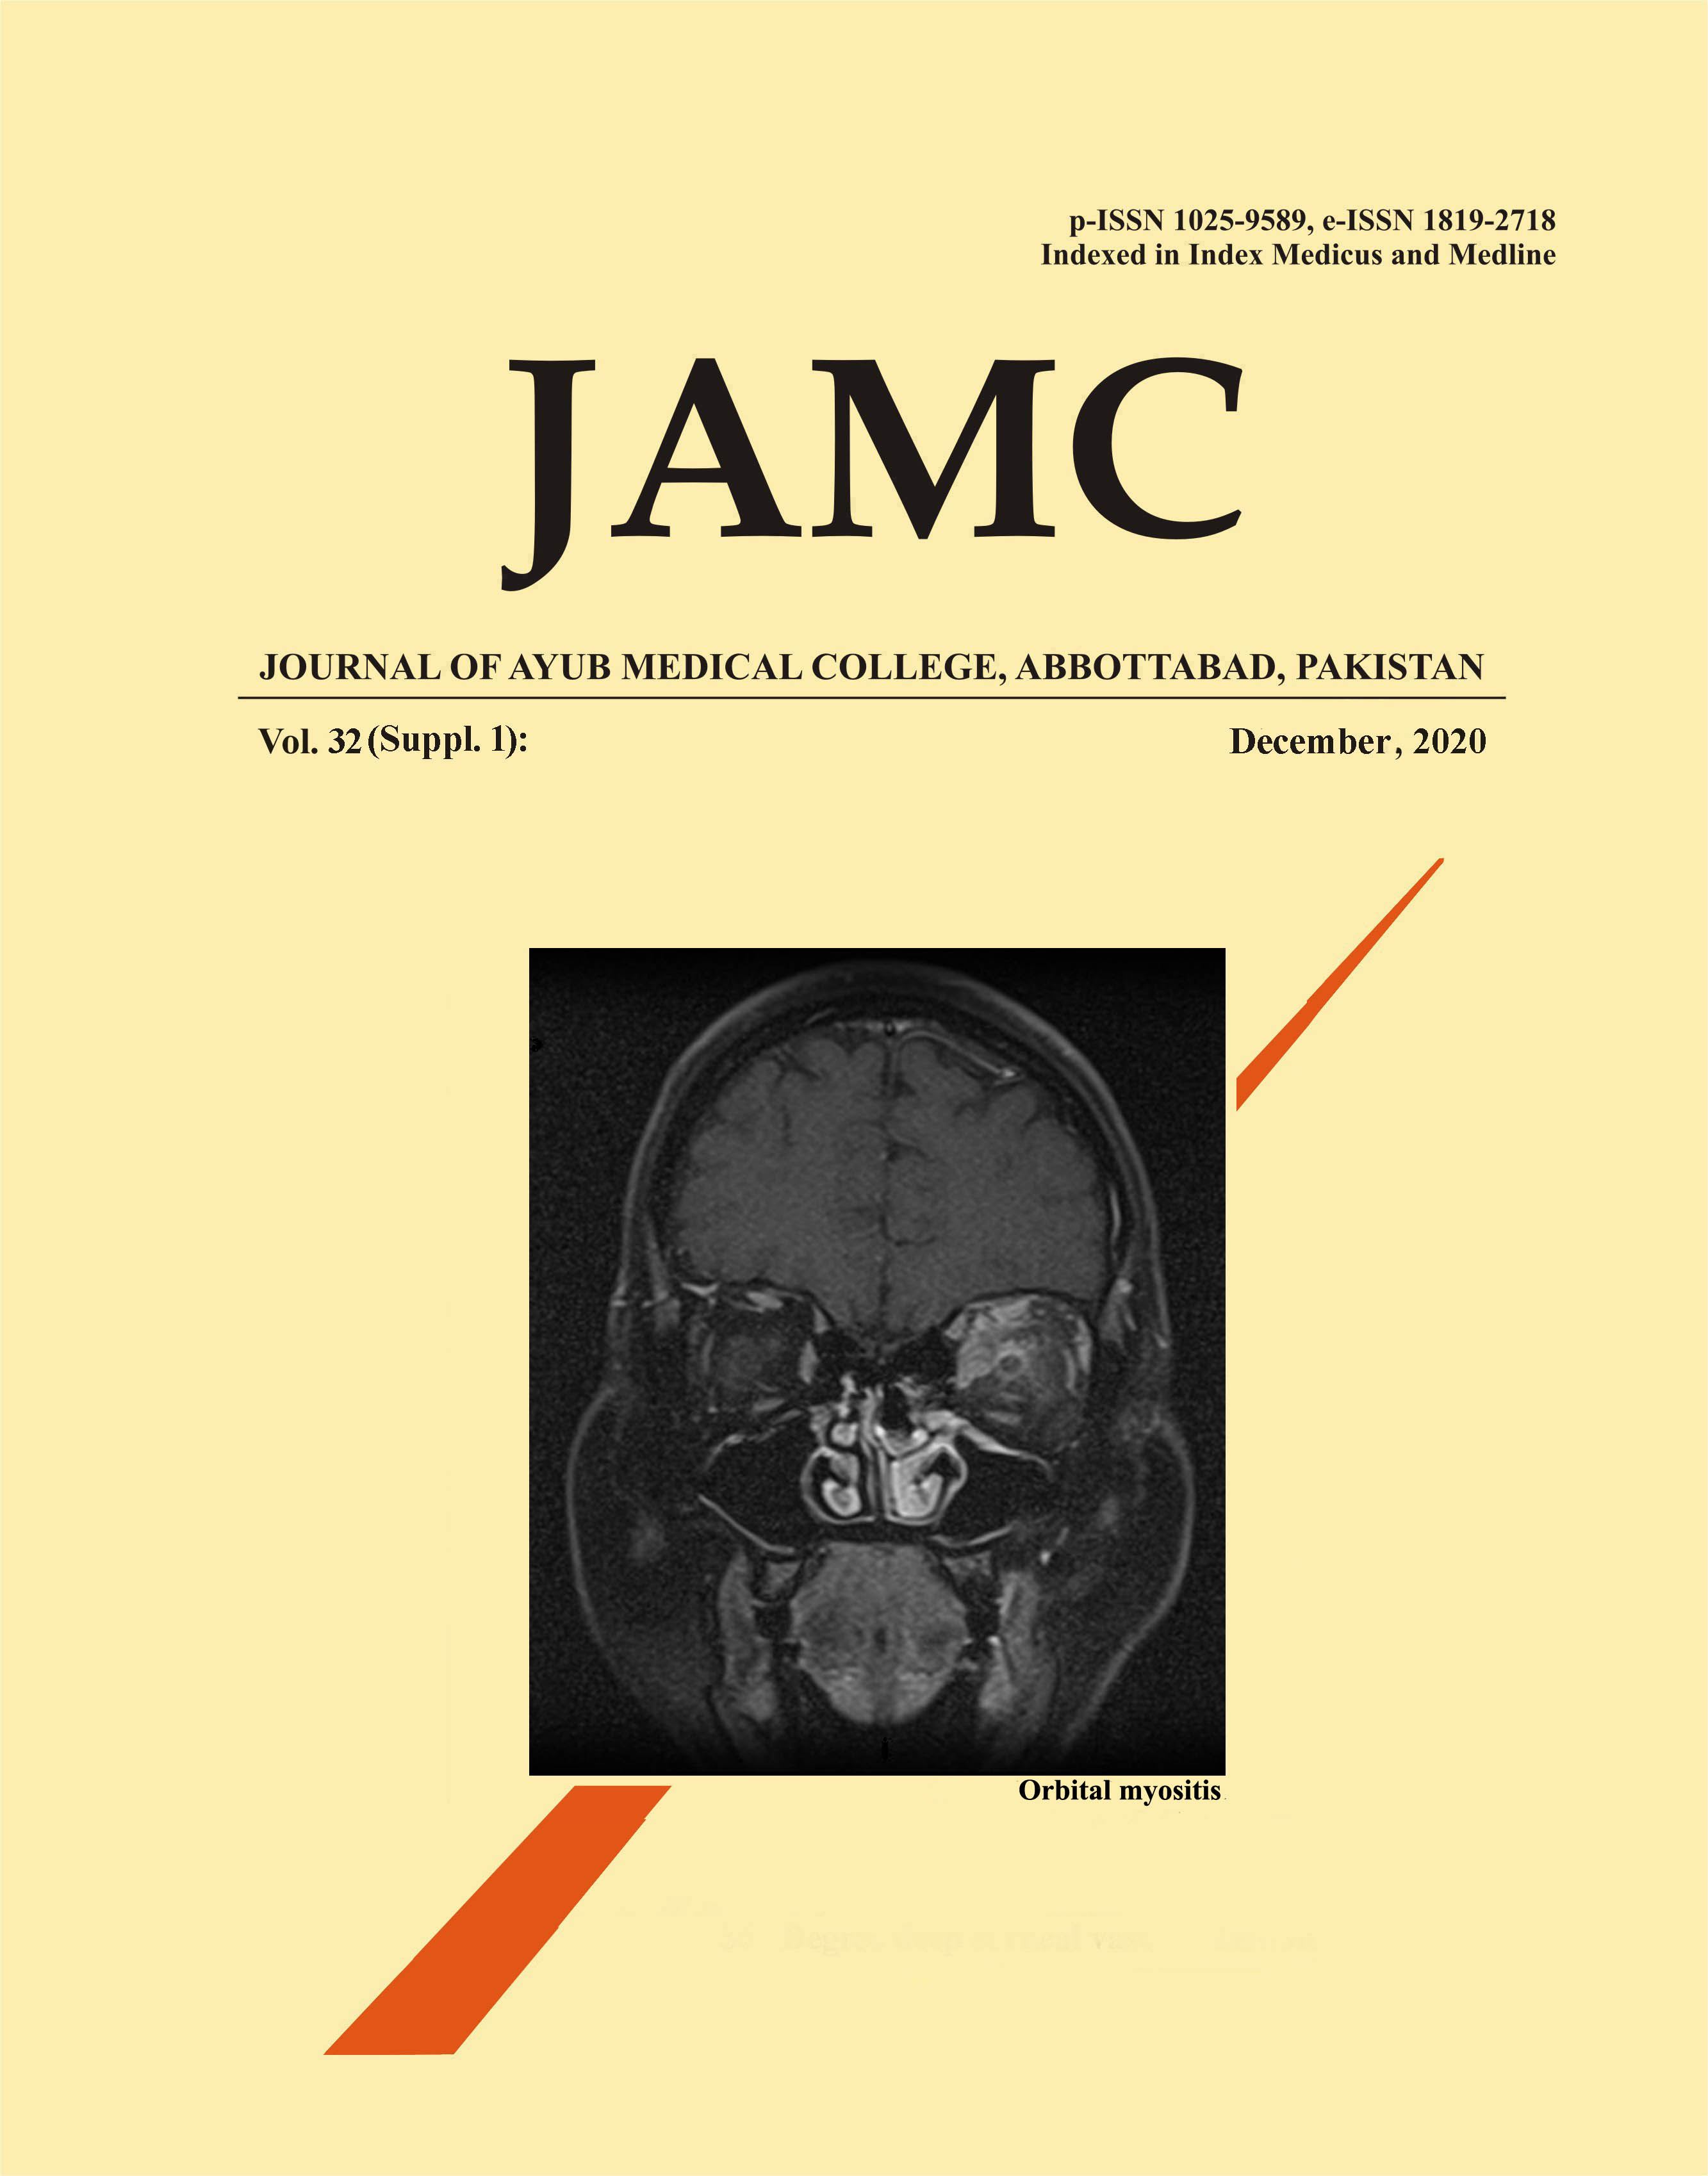 View Vol. 32 No. 4-Sup 1 (2020): JOURNAL OF AYUB MEDICAL COLLEGE, ABBOTTABAD